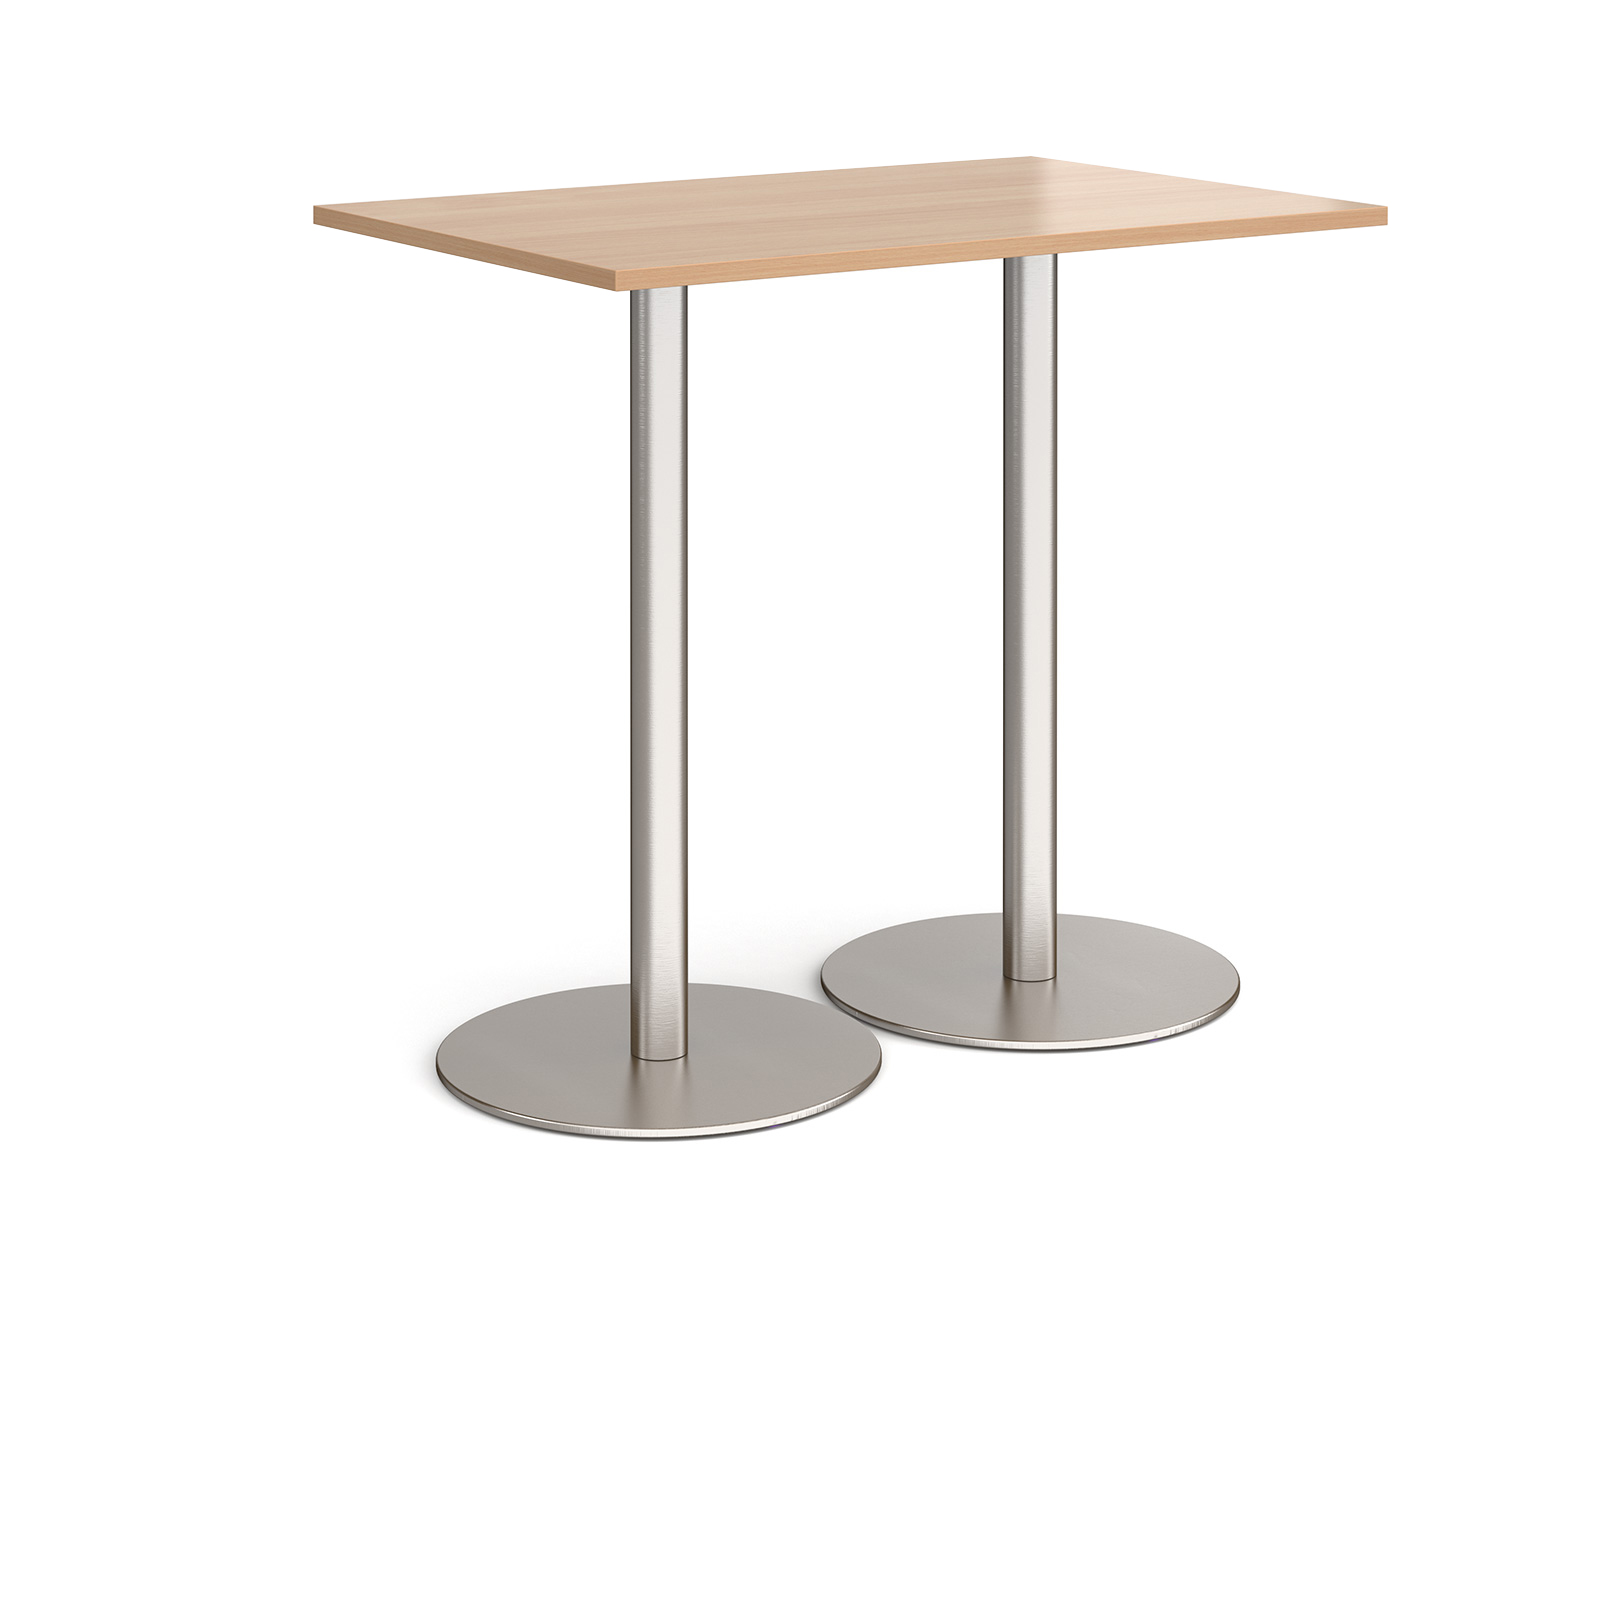 Monza rectangular poseur table with round bases